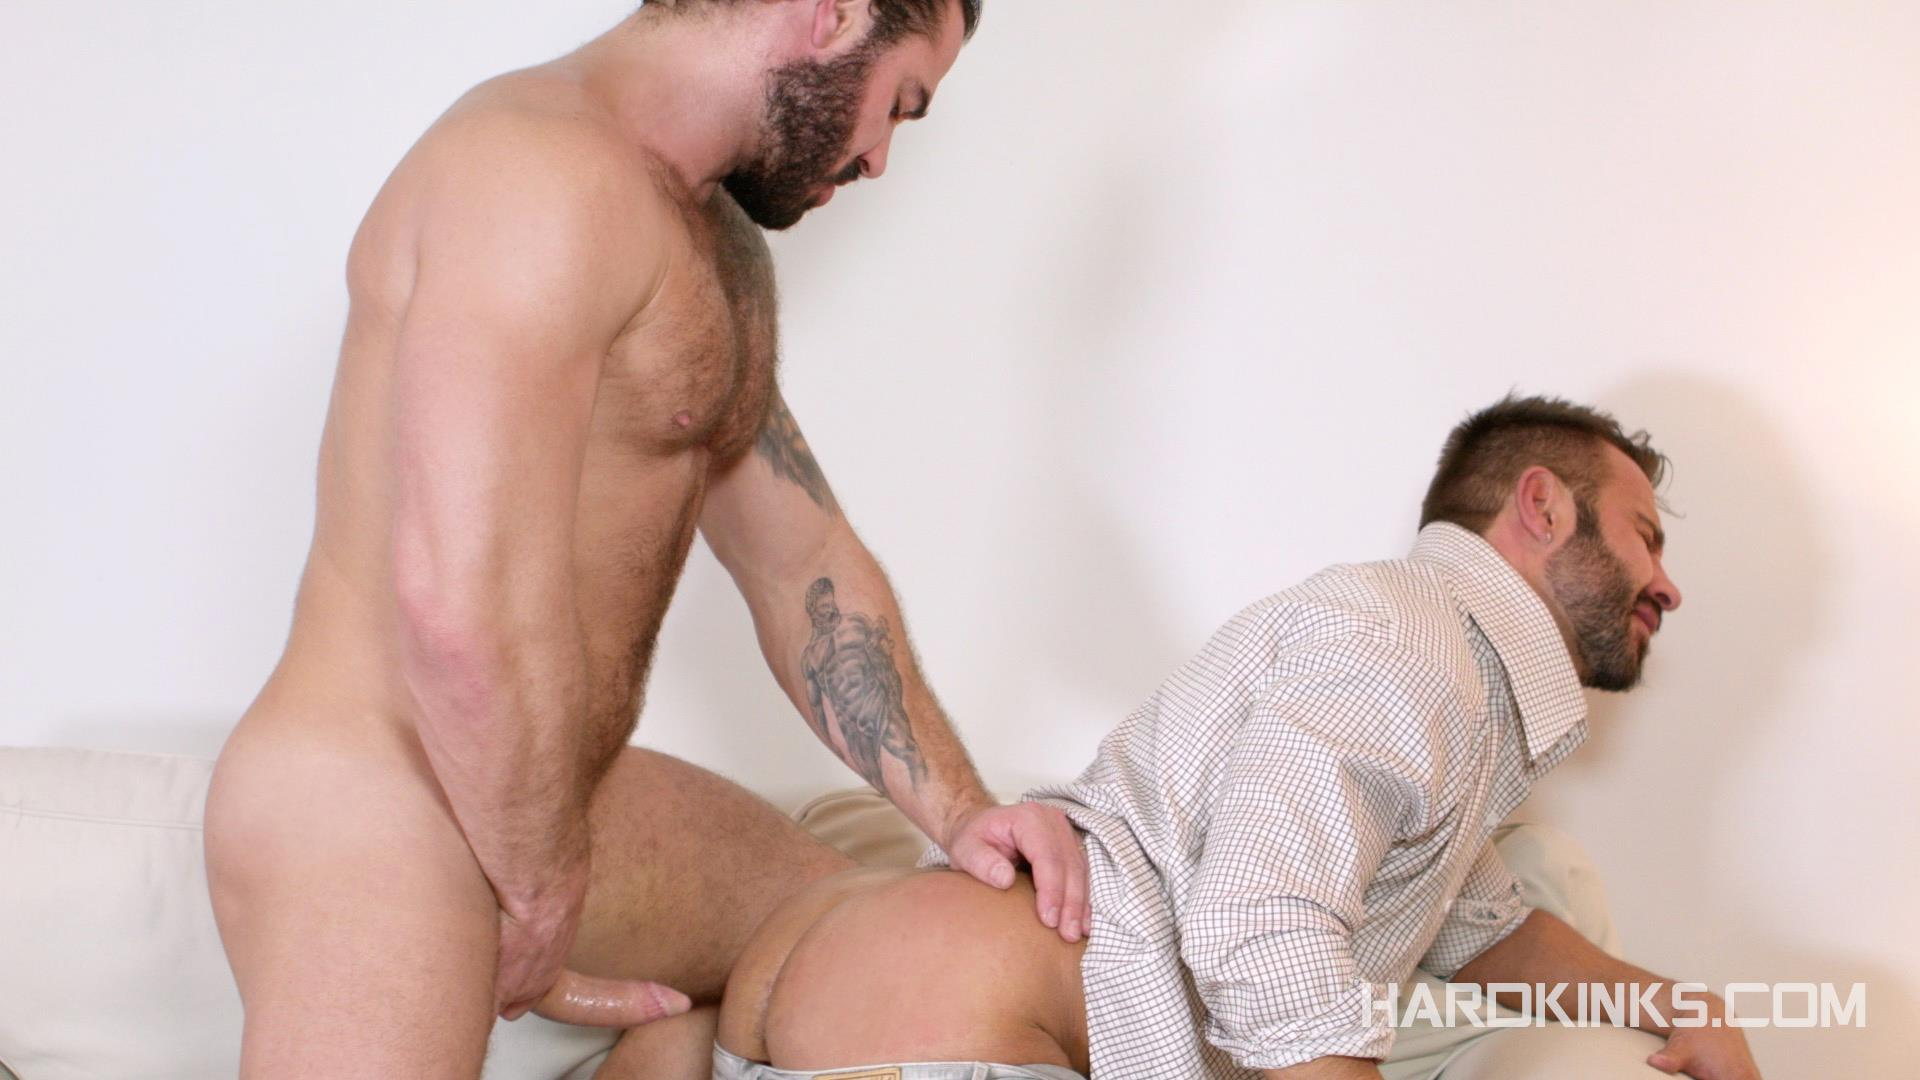 Hardkinks Jessy Ares and Martin Mazza Hairy Alpha Male Amateur Gay Porn 11 Hairy Muscle Alpha Male Dominates His Coworker